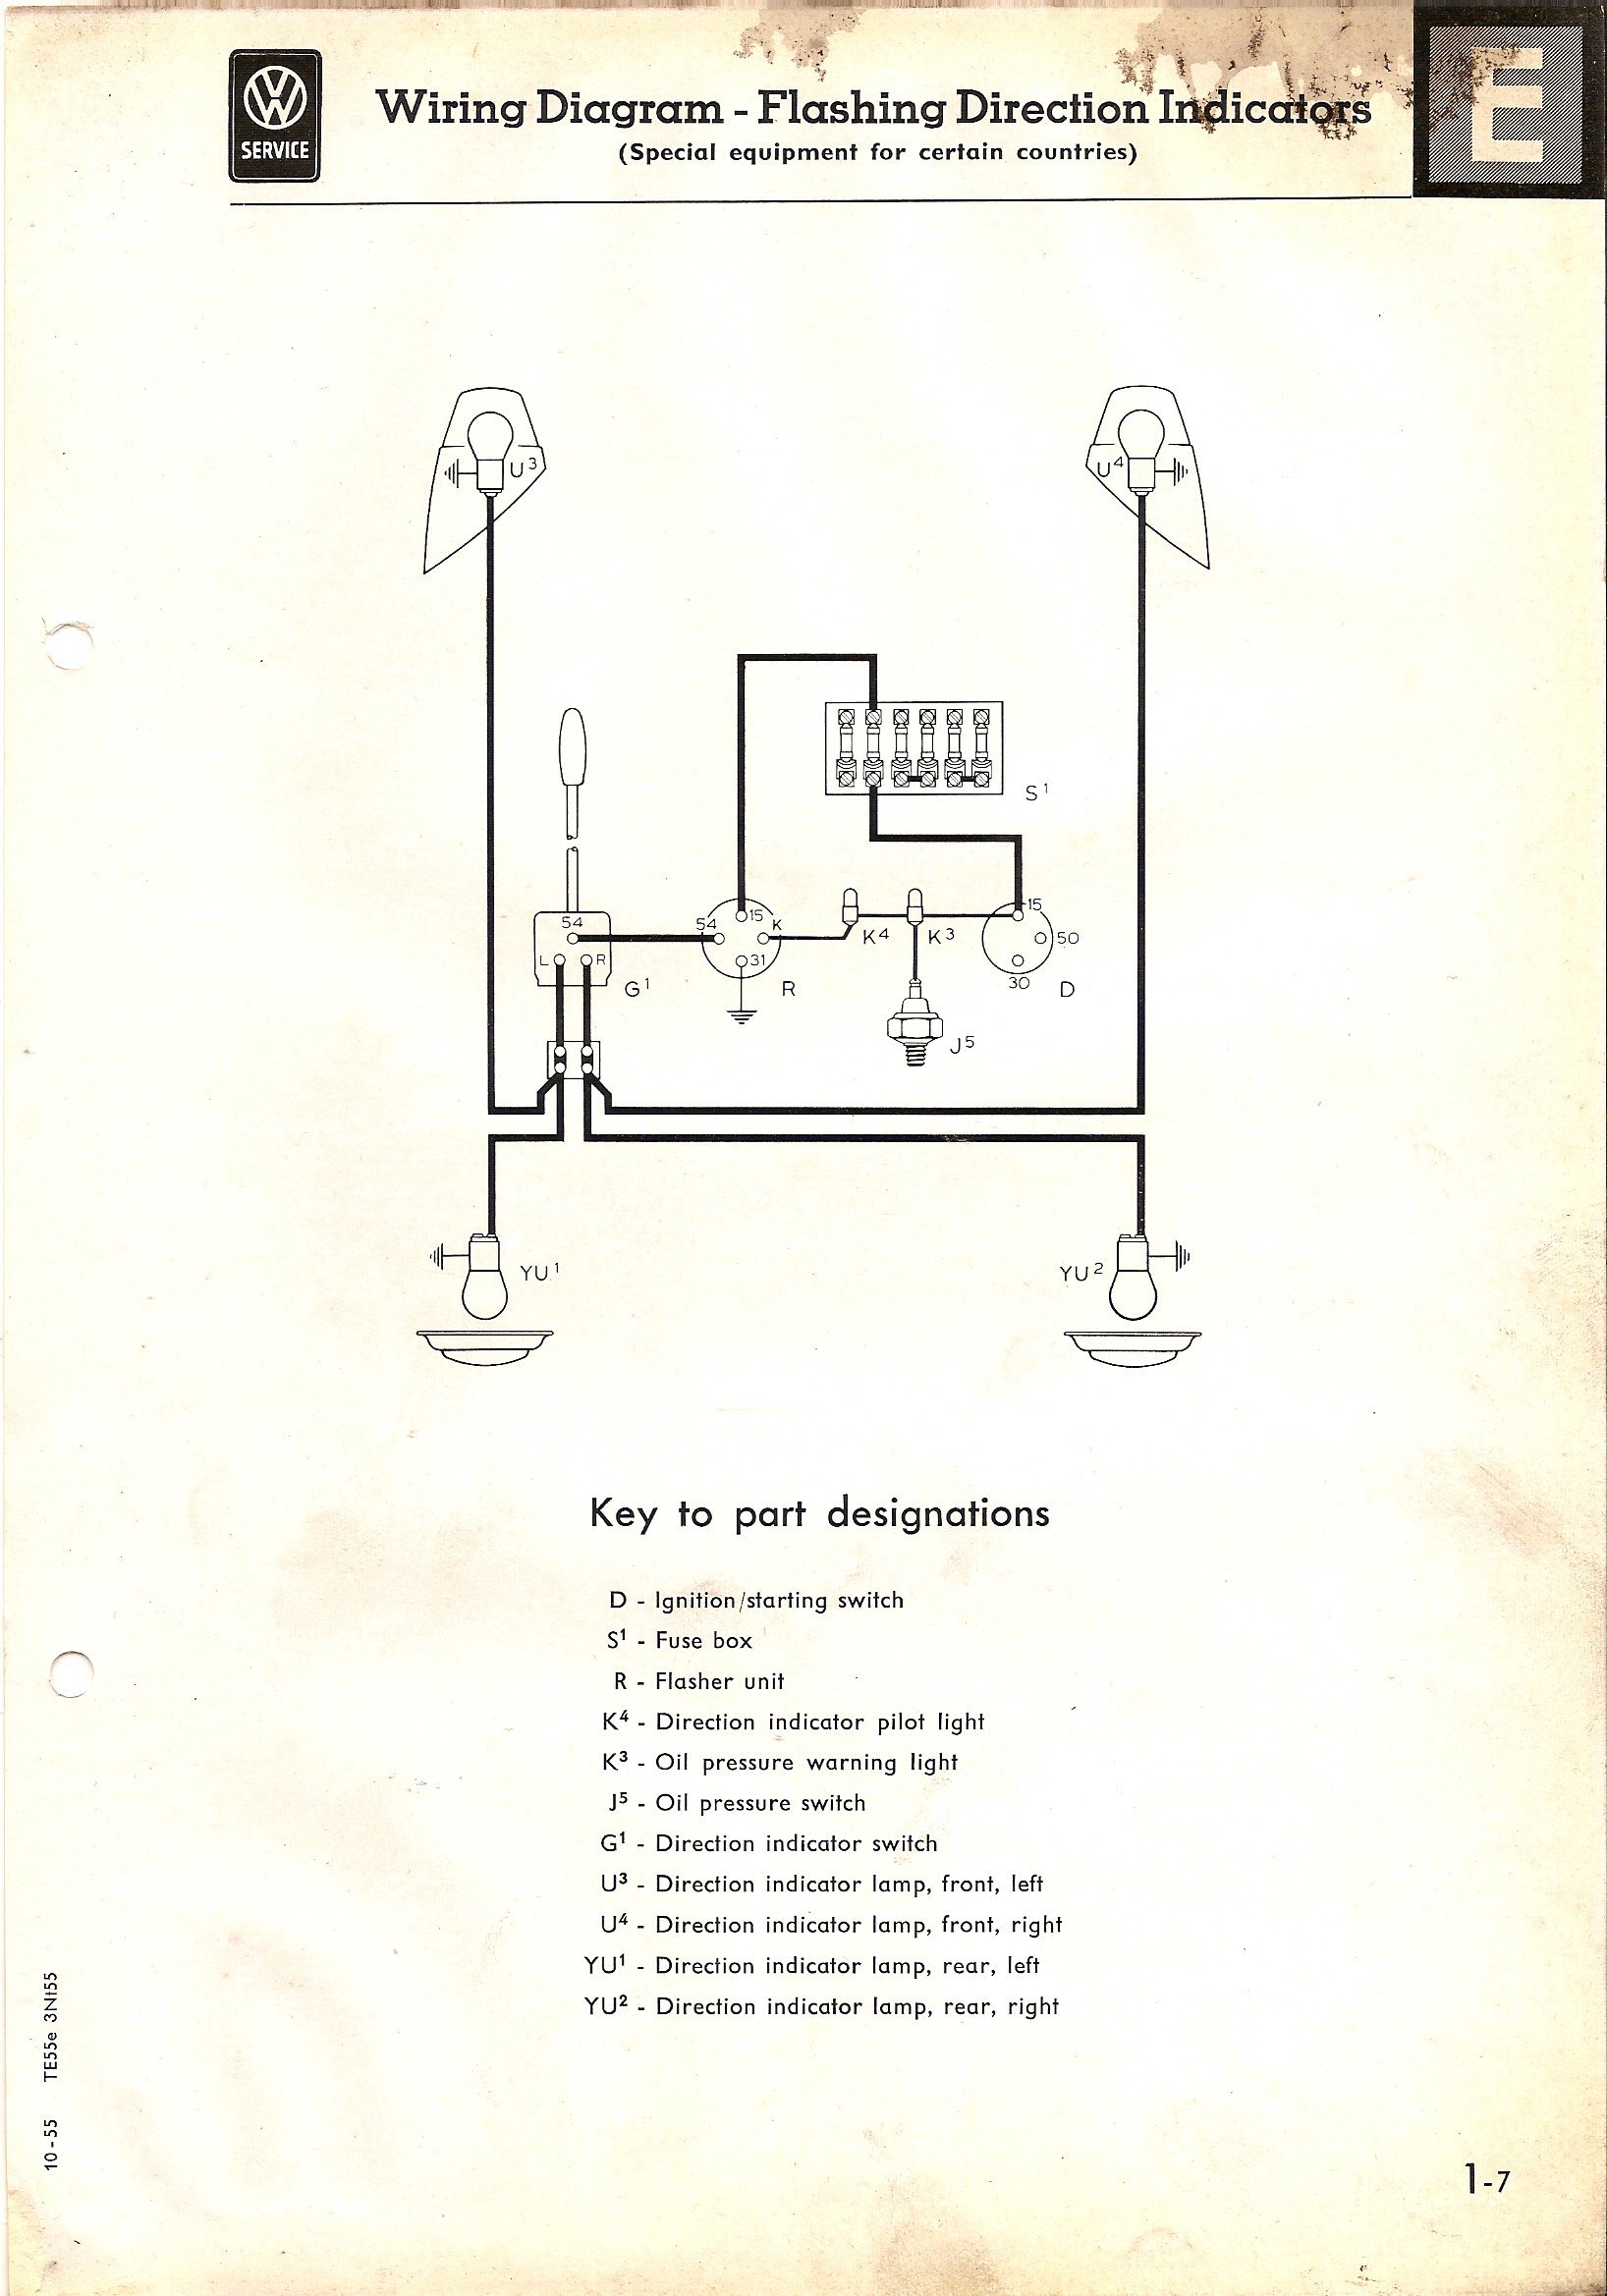 Type 2 Wiring Diagrams Light Switch To Diagram